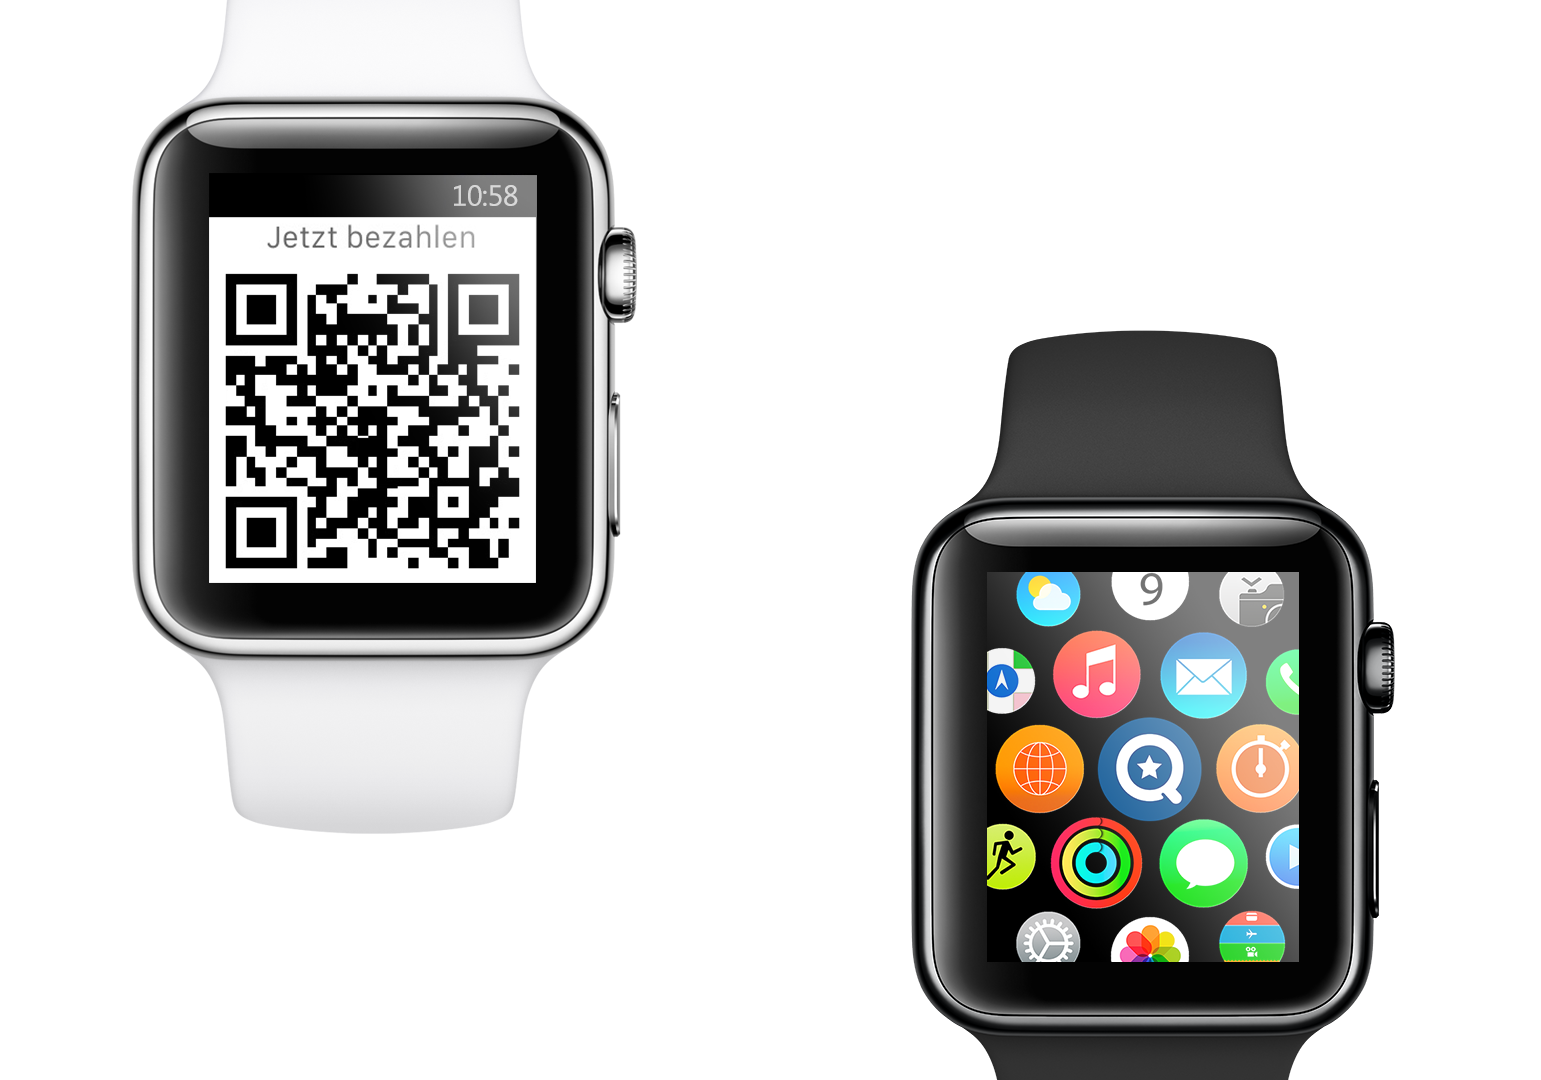 Qnips | Mobile Payment via Smartwatch